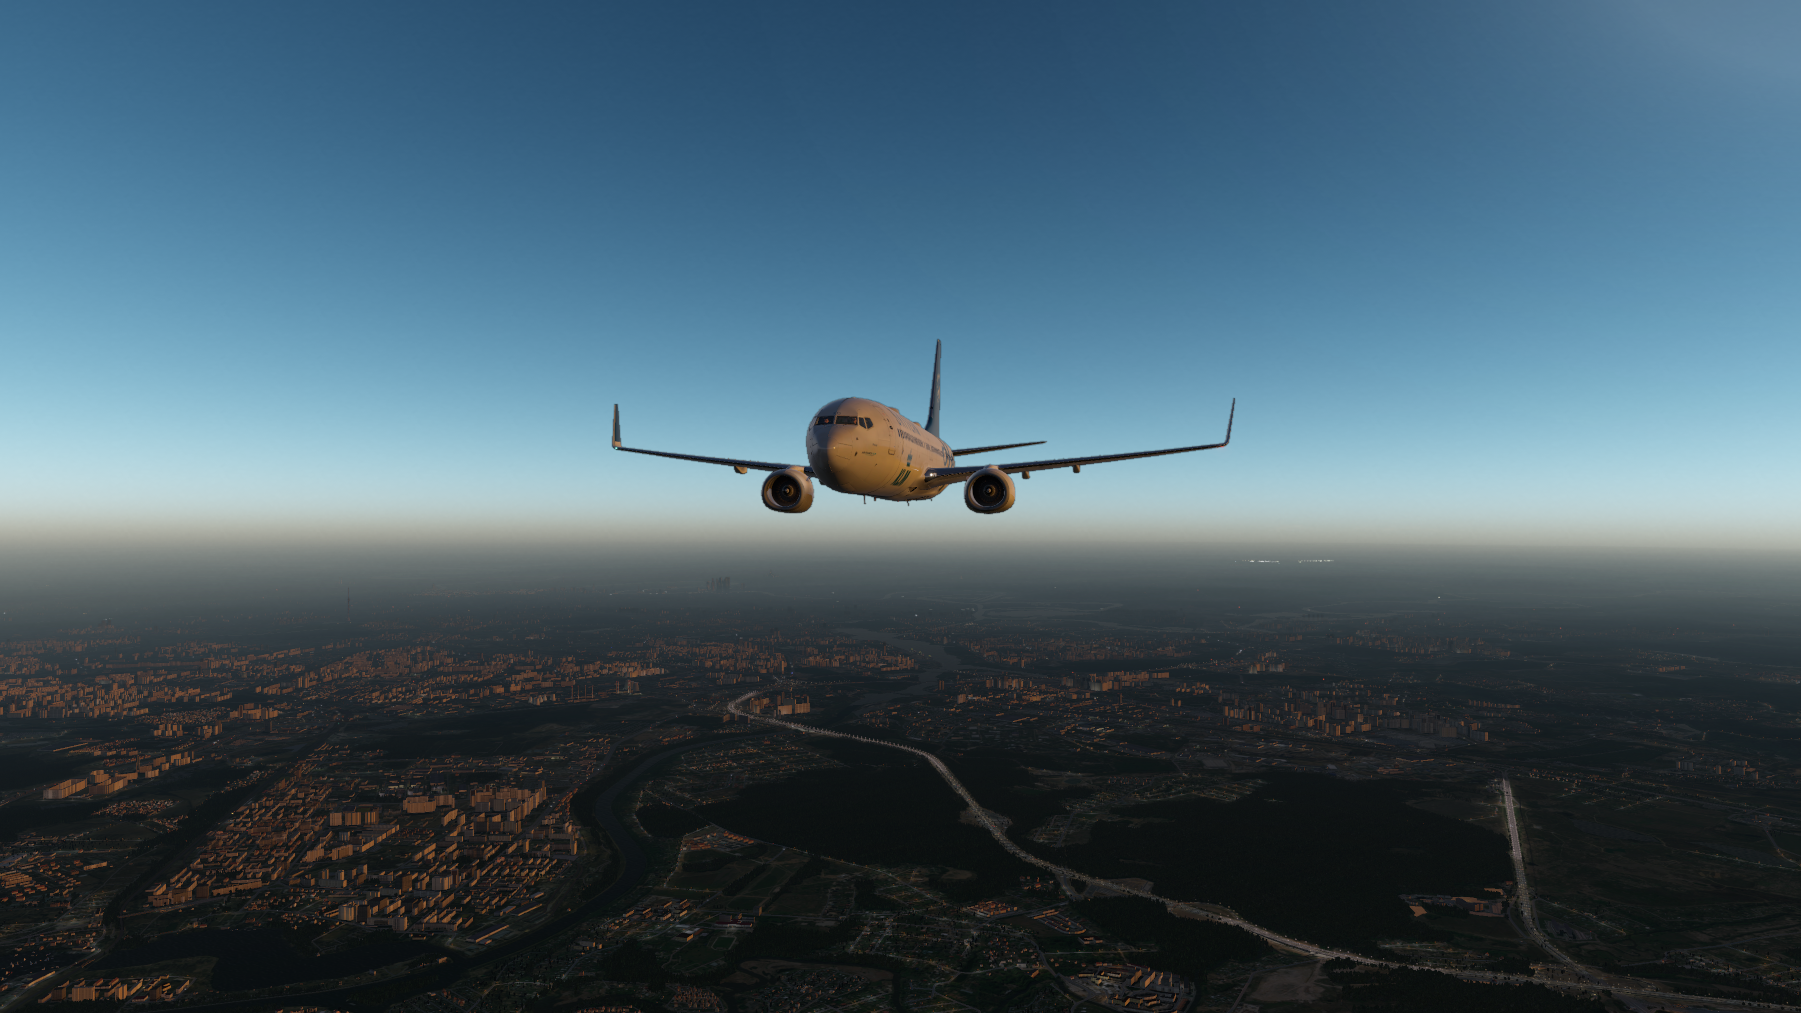 b739_13.png